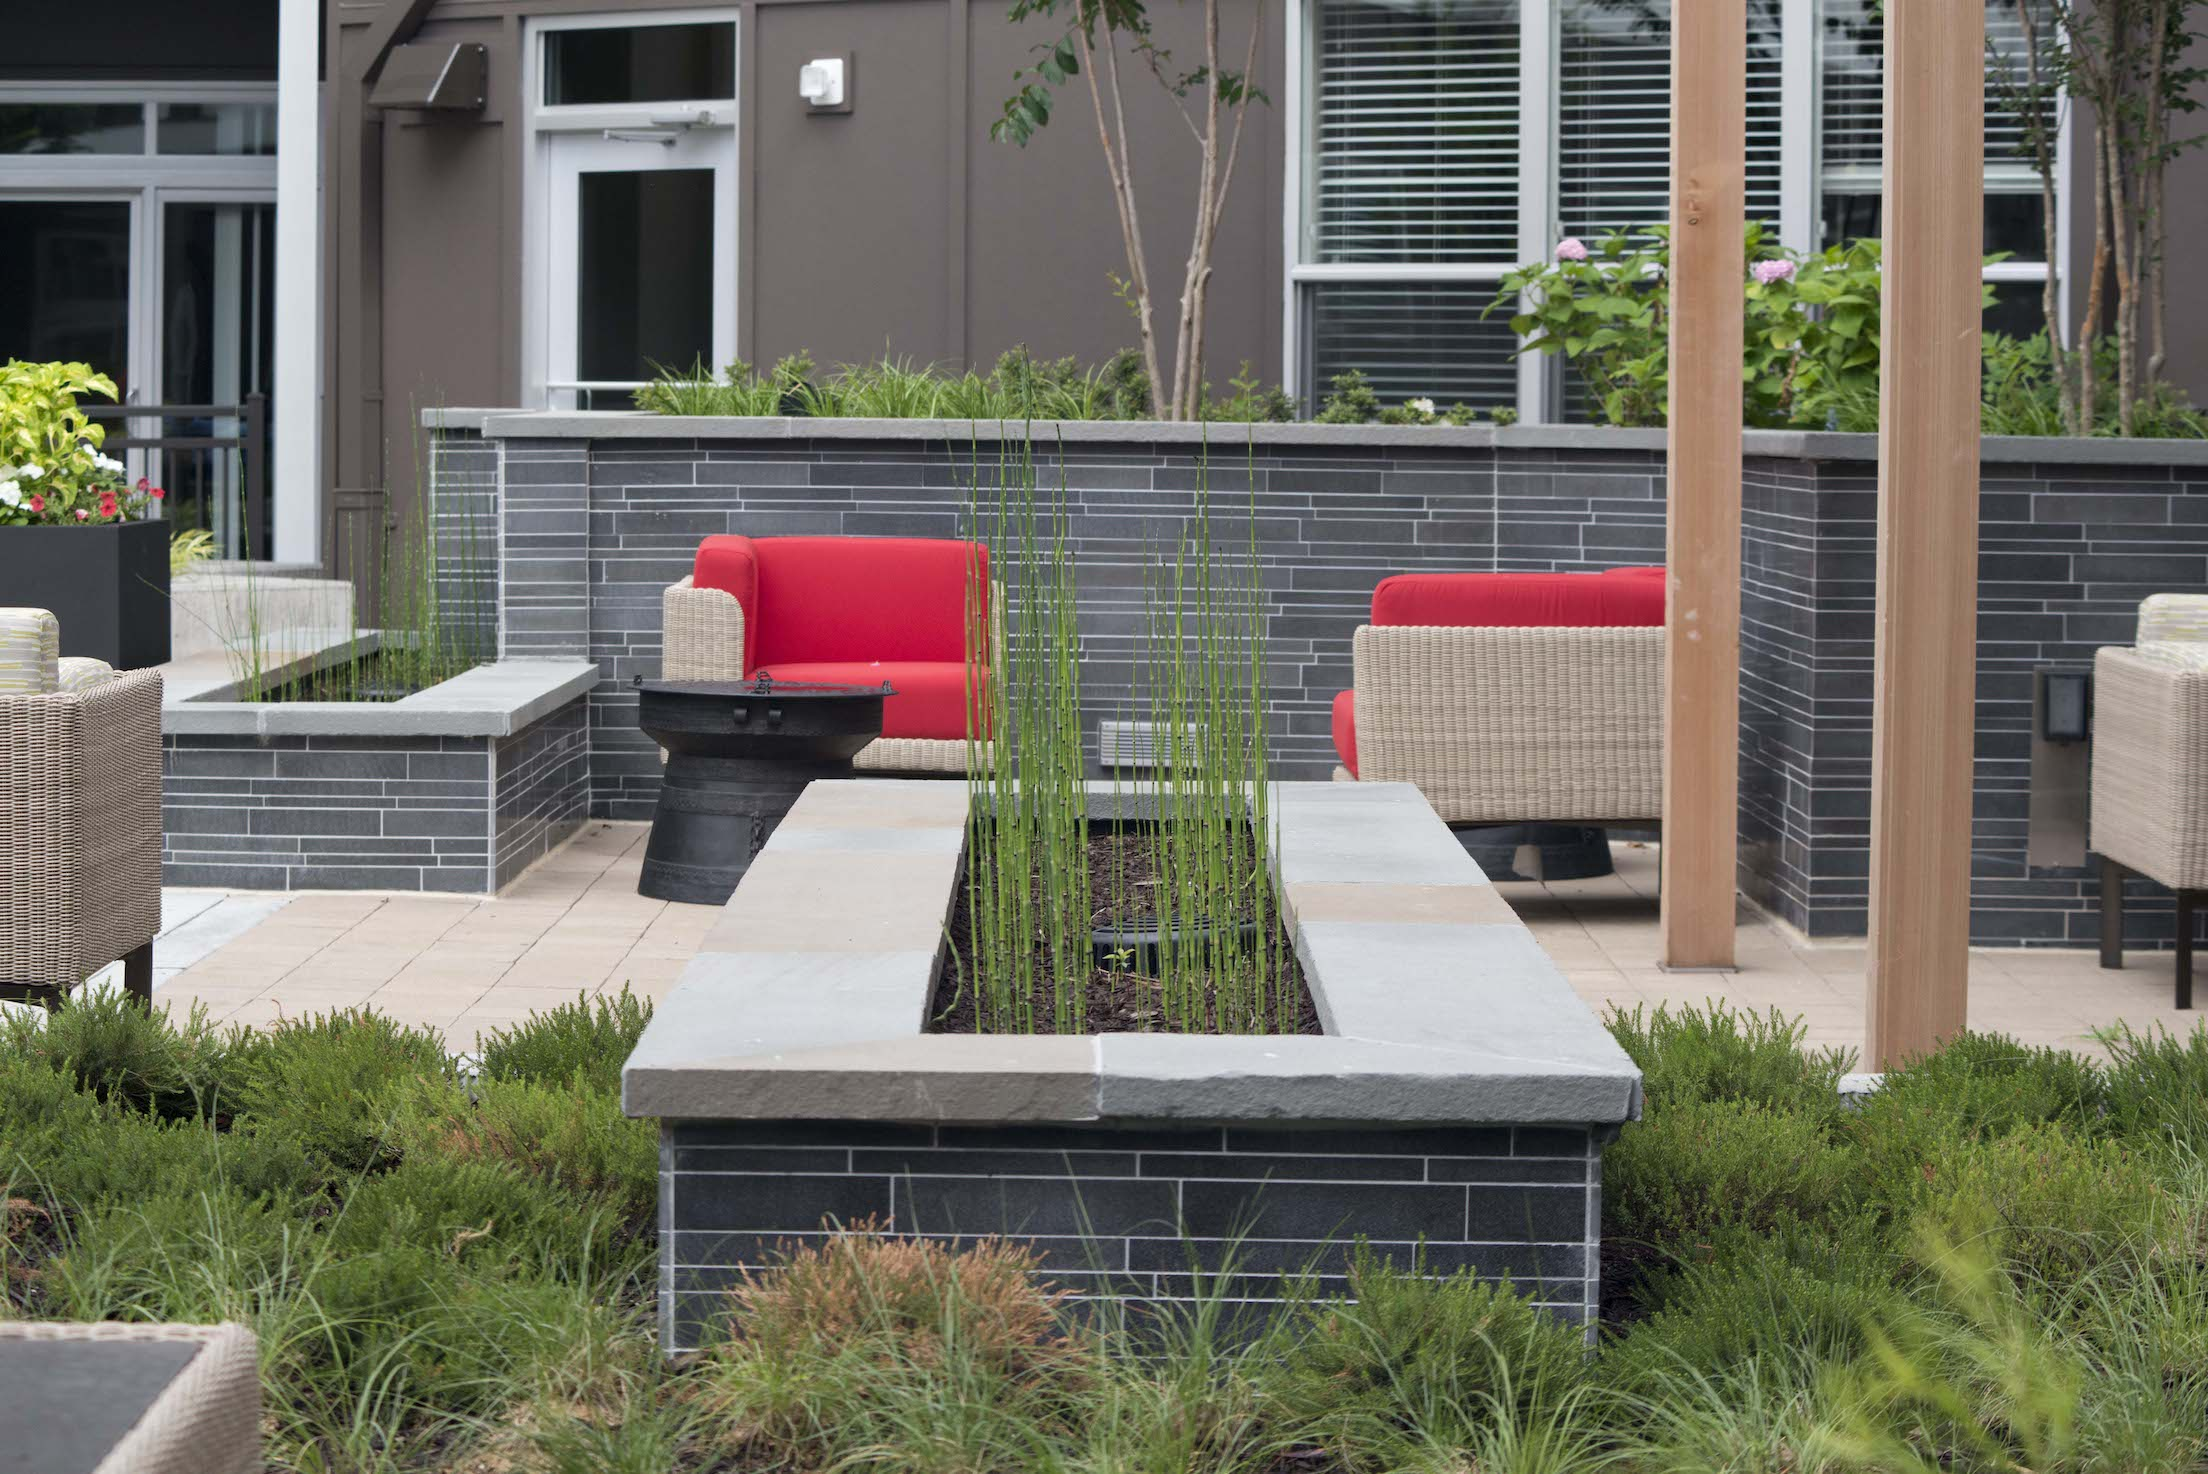 Grey Basalt Interlocking Tile - Landbay J - Washington DC - Planter